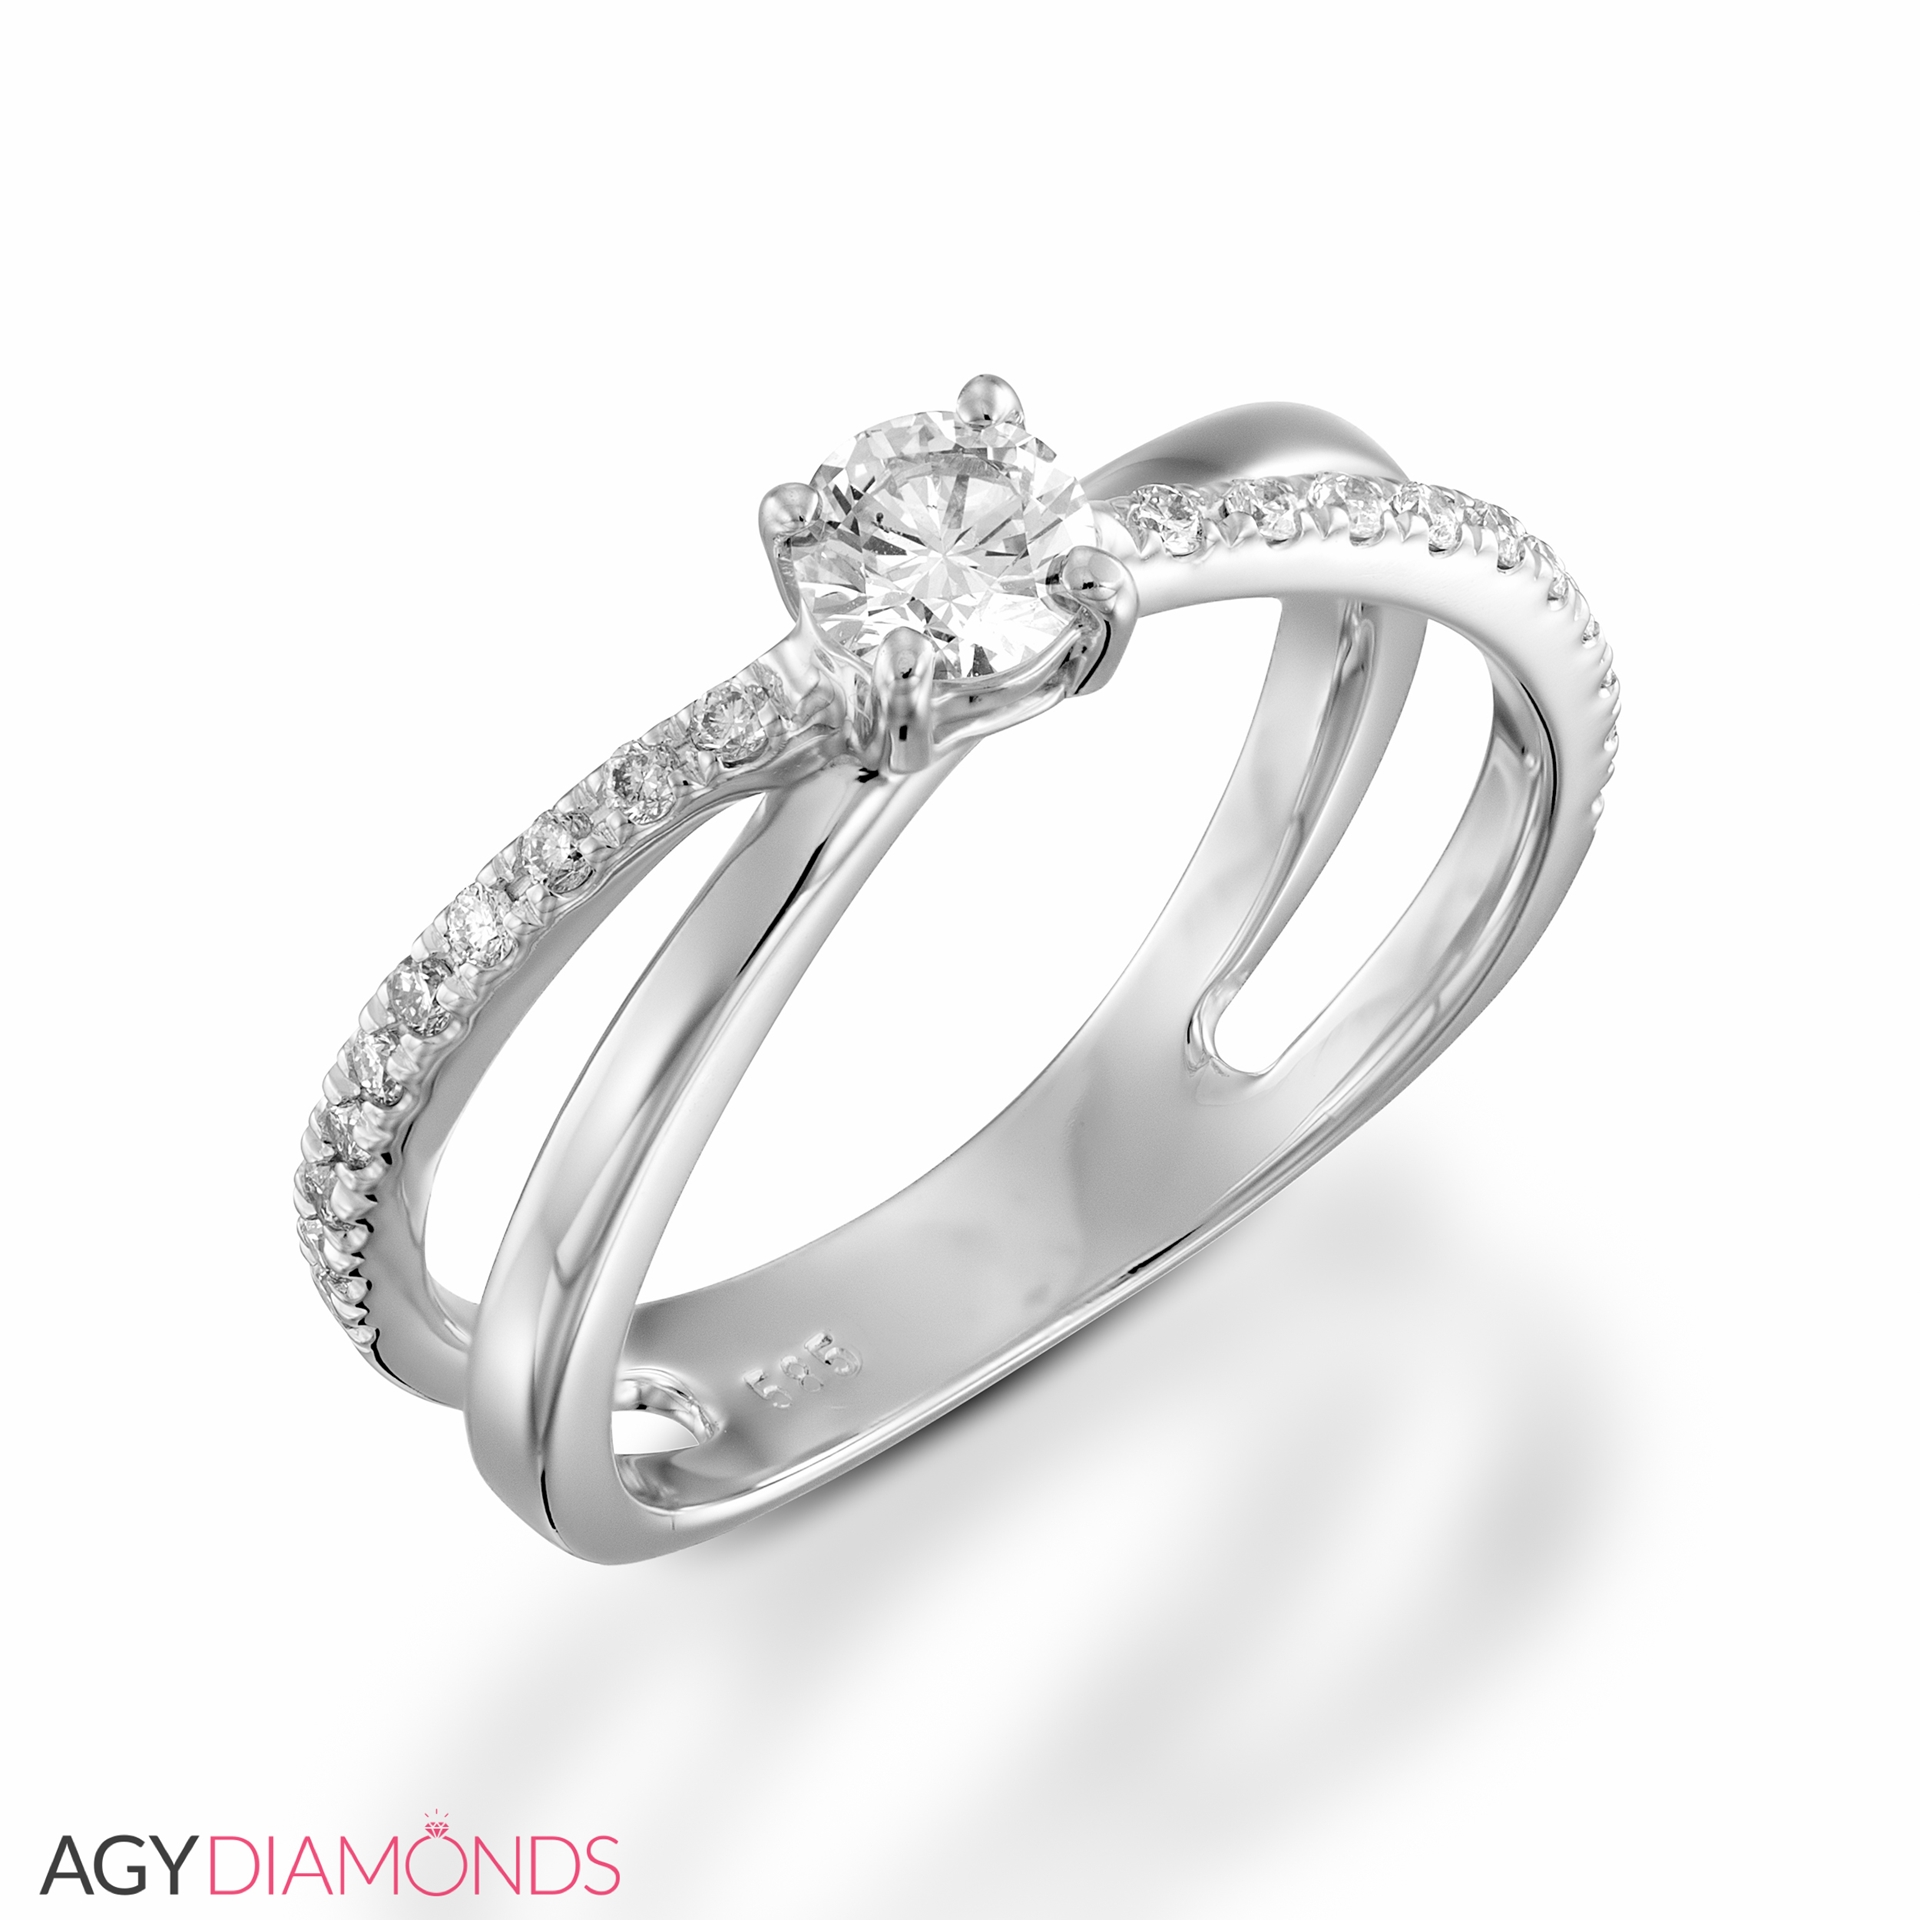 engagement allen custom ring single designers her designs girl rings a wedding fashion photos james dream trends